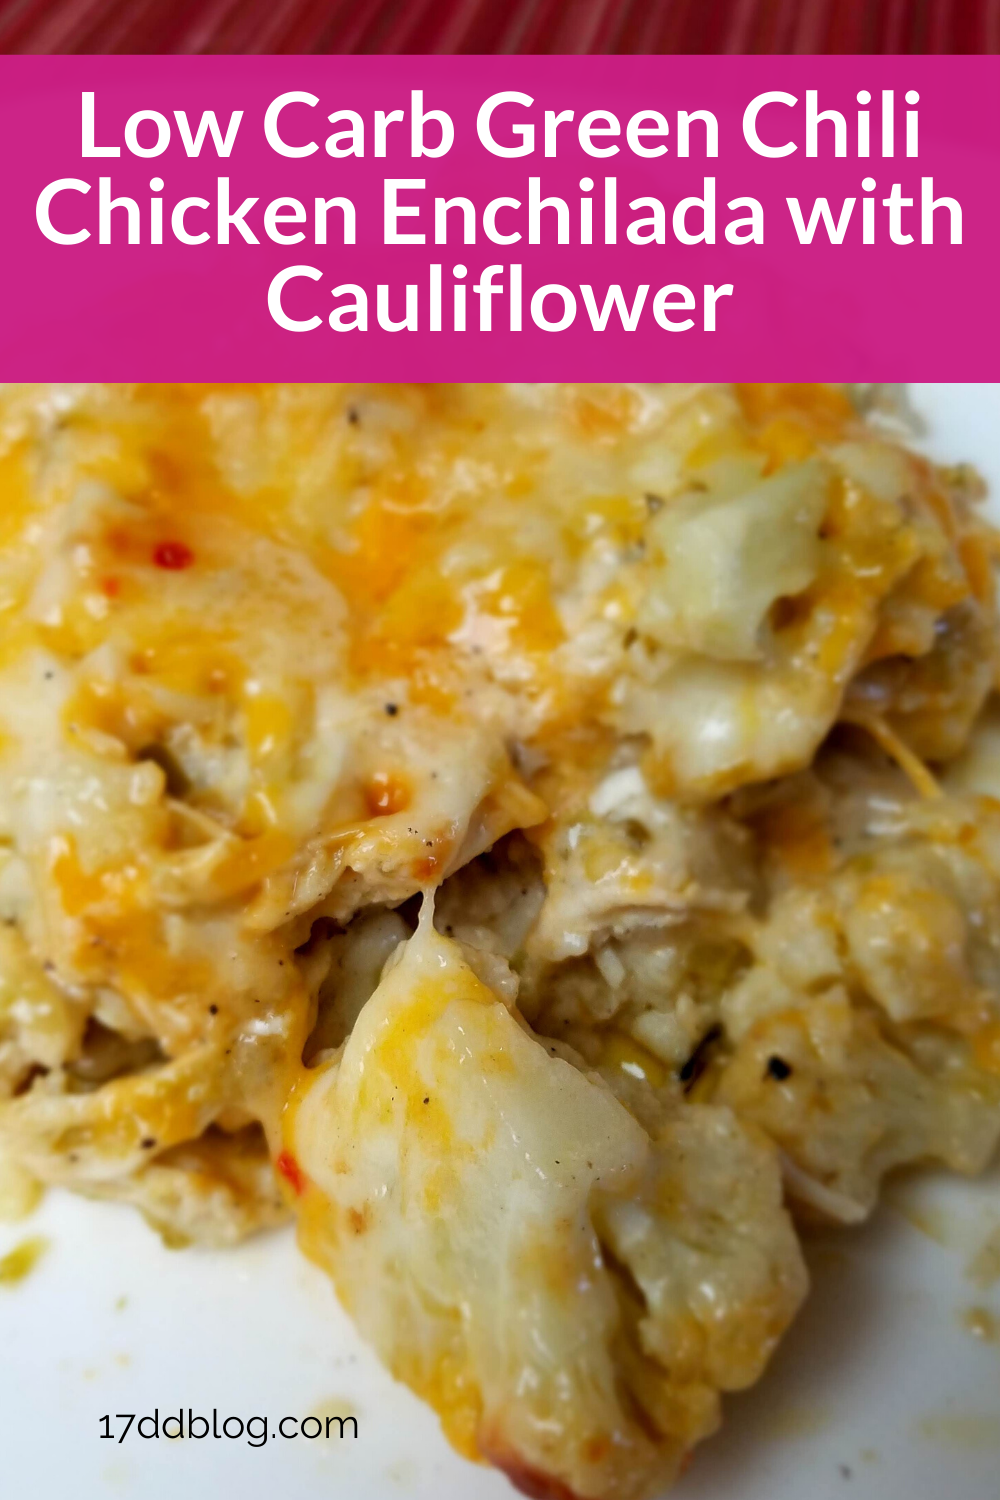 Low Carb Green Chili Chicken Enchilada With Cauliflower Green Chili Chicken Green Chili Chicken Enchiladas Chicken Enchiladas